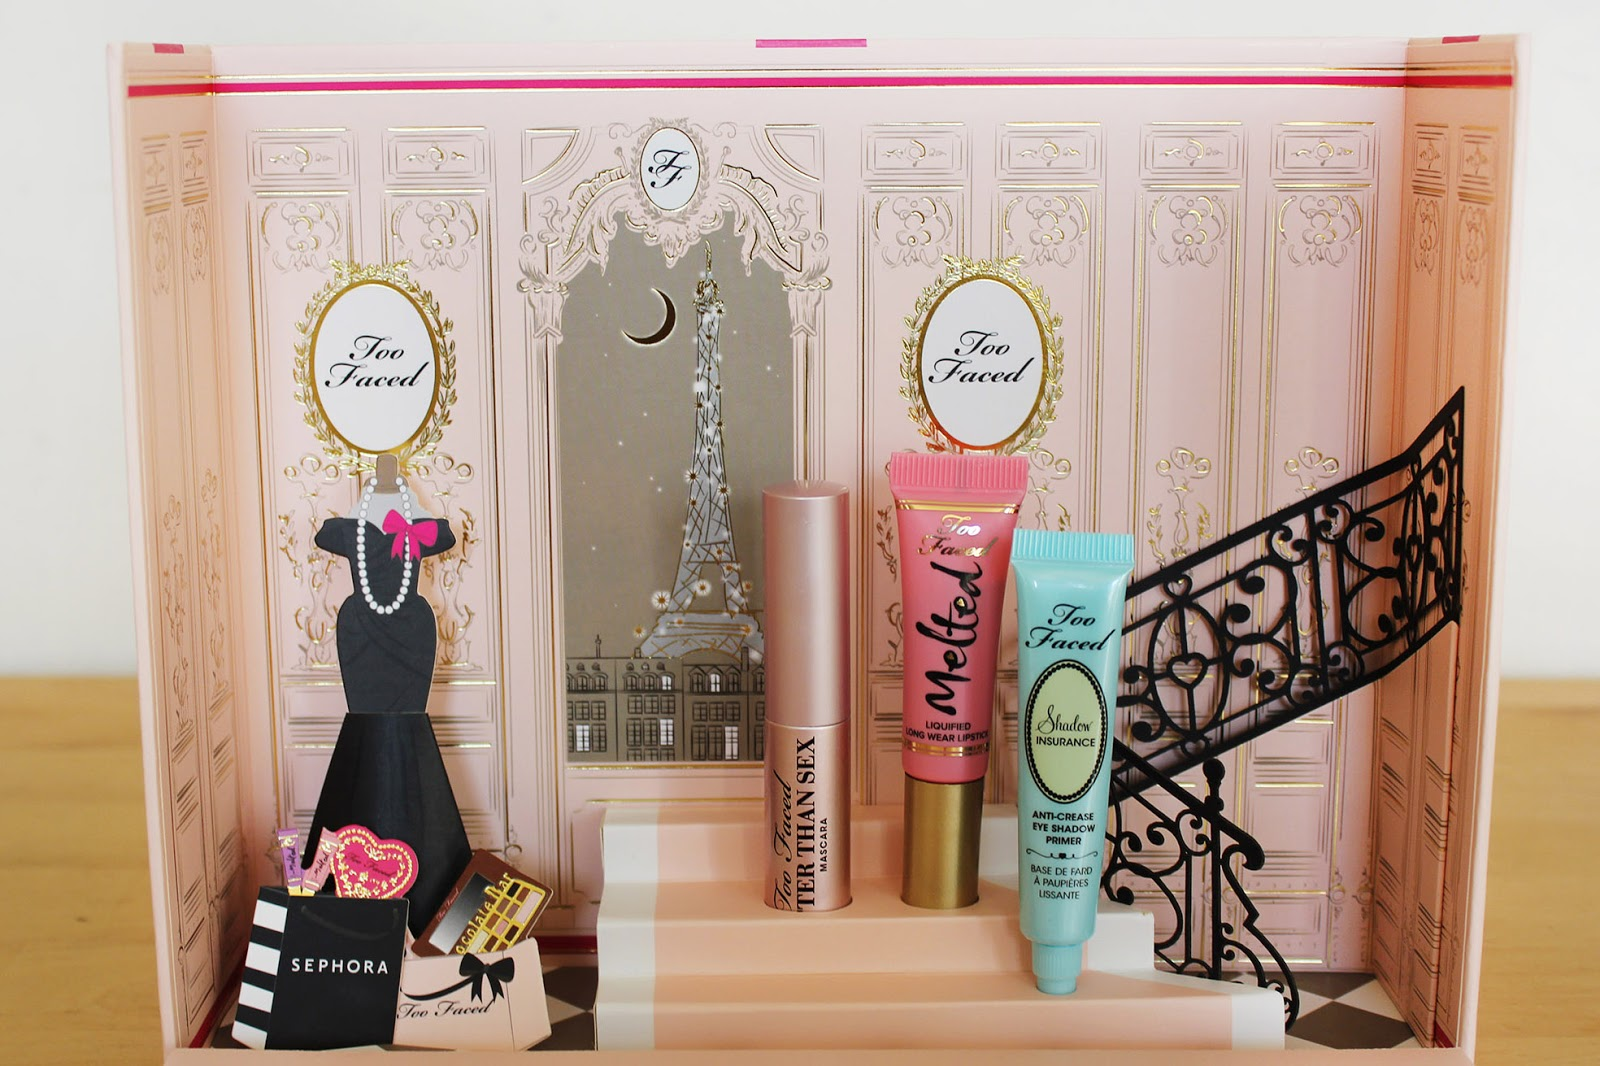 Too Faced - Le Grand Palais